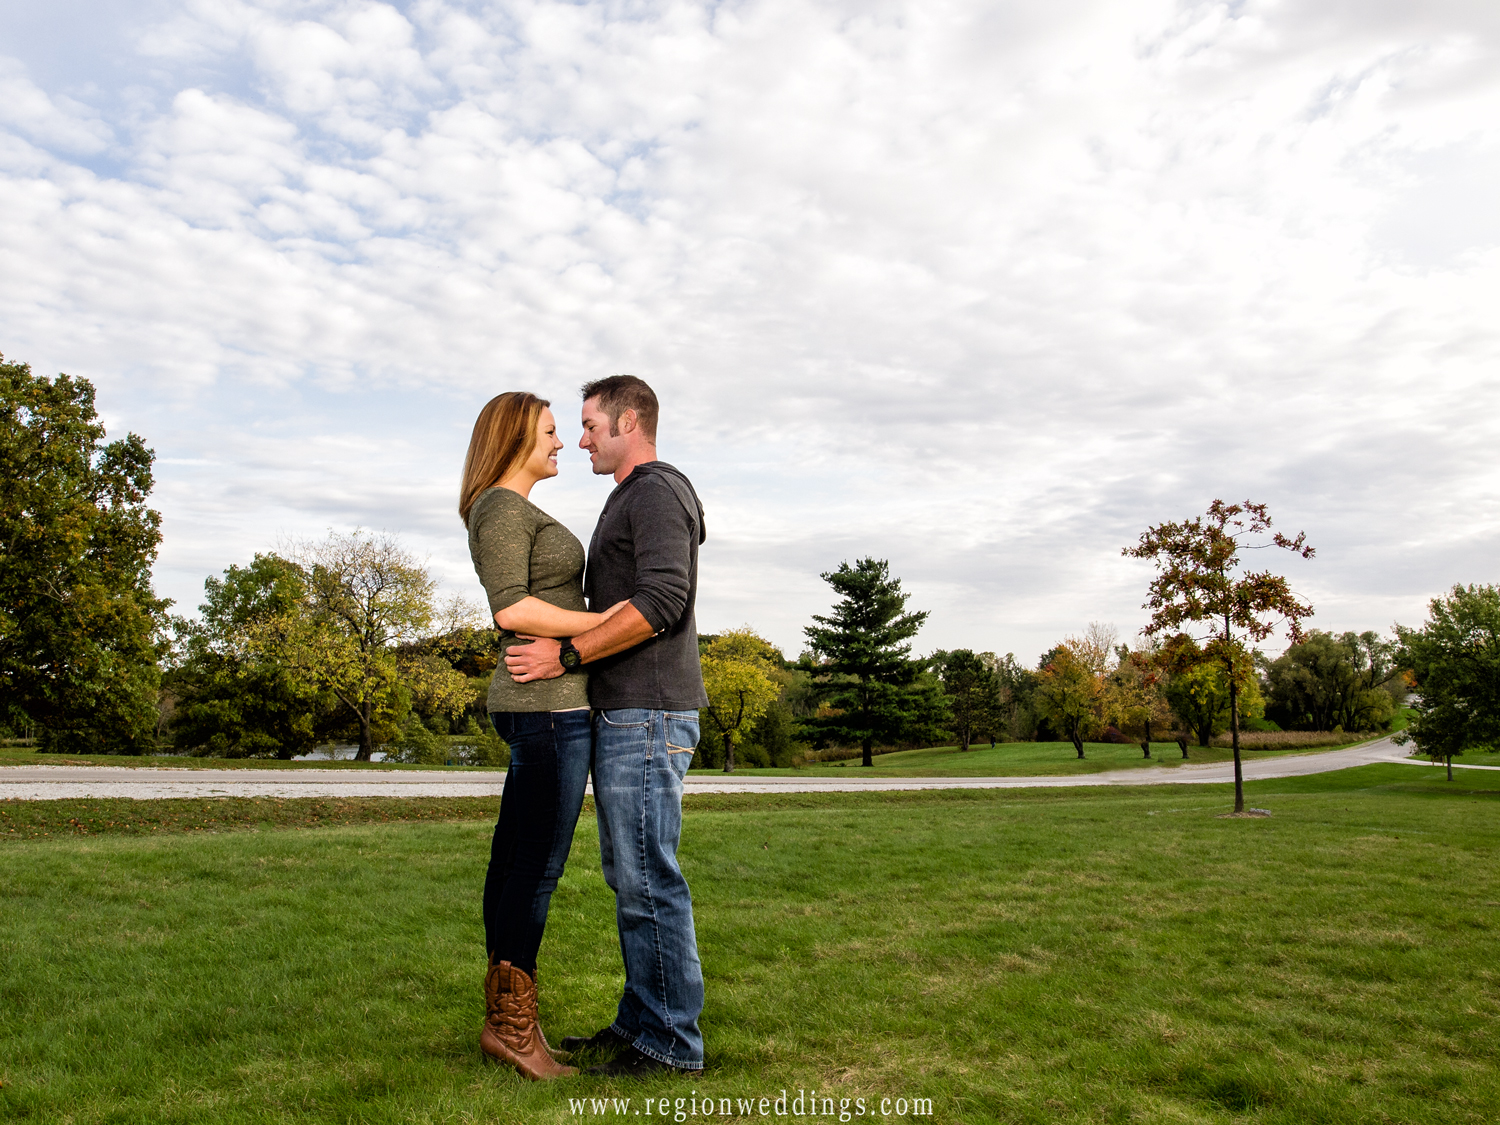 A couple embraces between trees and underneath the open sky for an Autumn engagement photo.